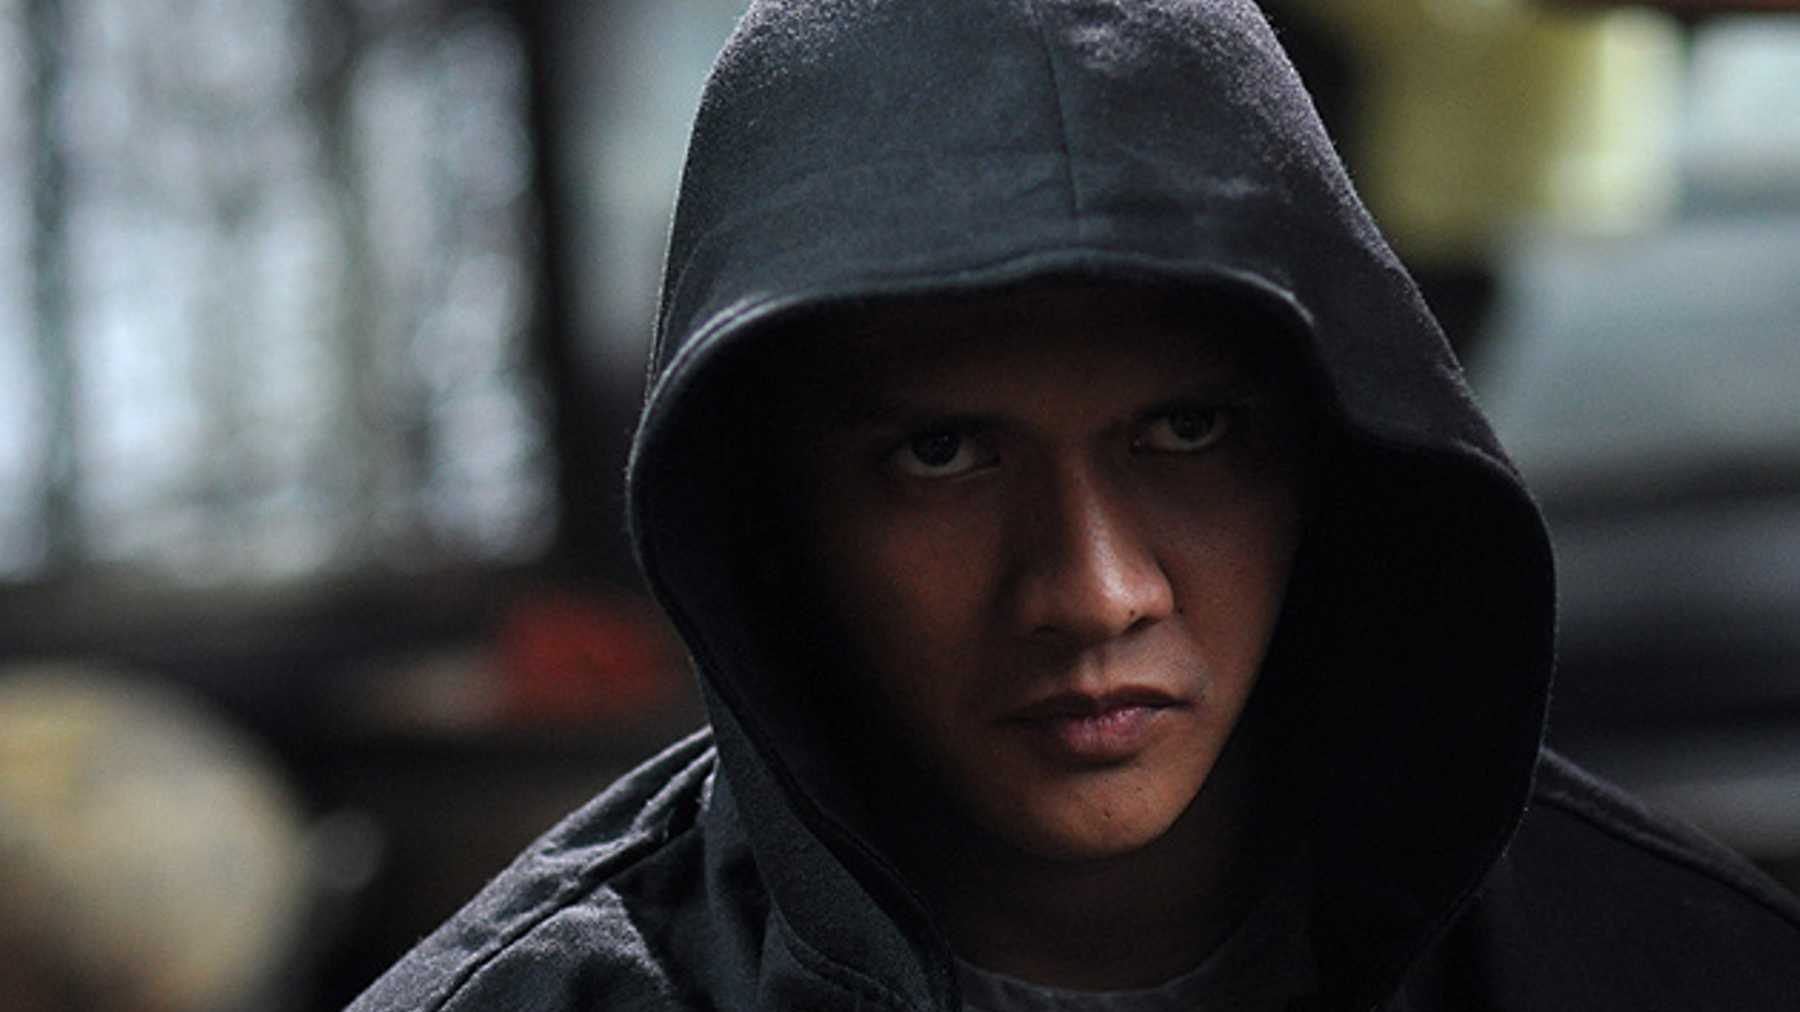 Iko Uwais And More Reportedly Part Of Star Wars The Force Awakens Movies Empire